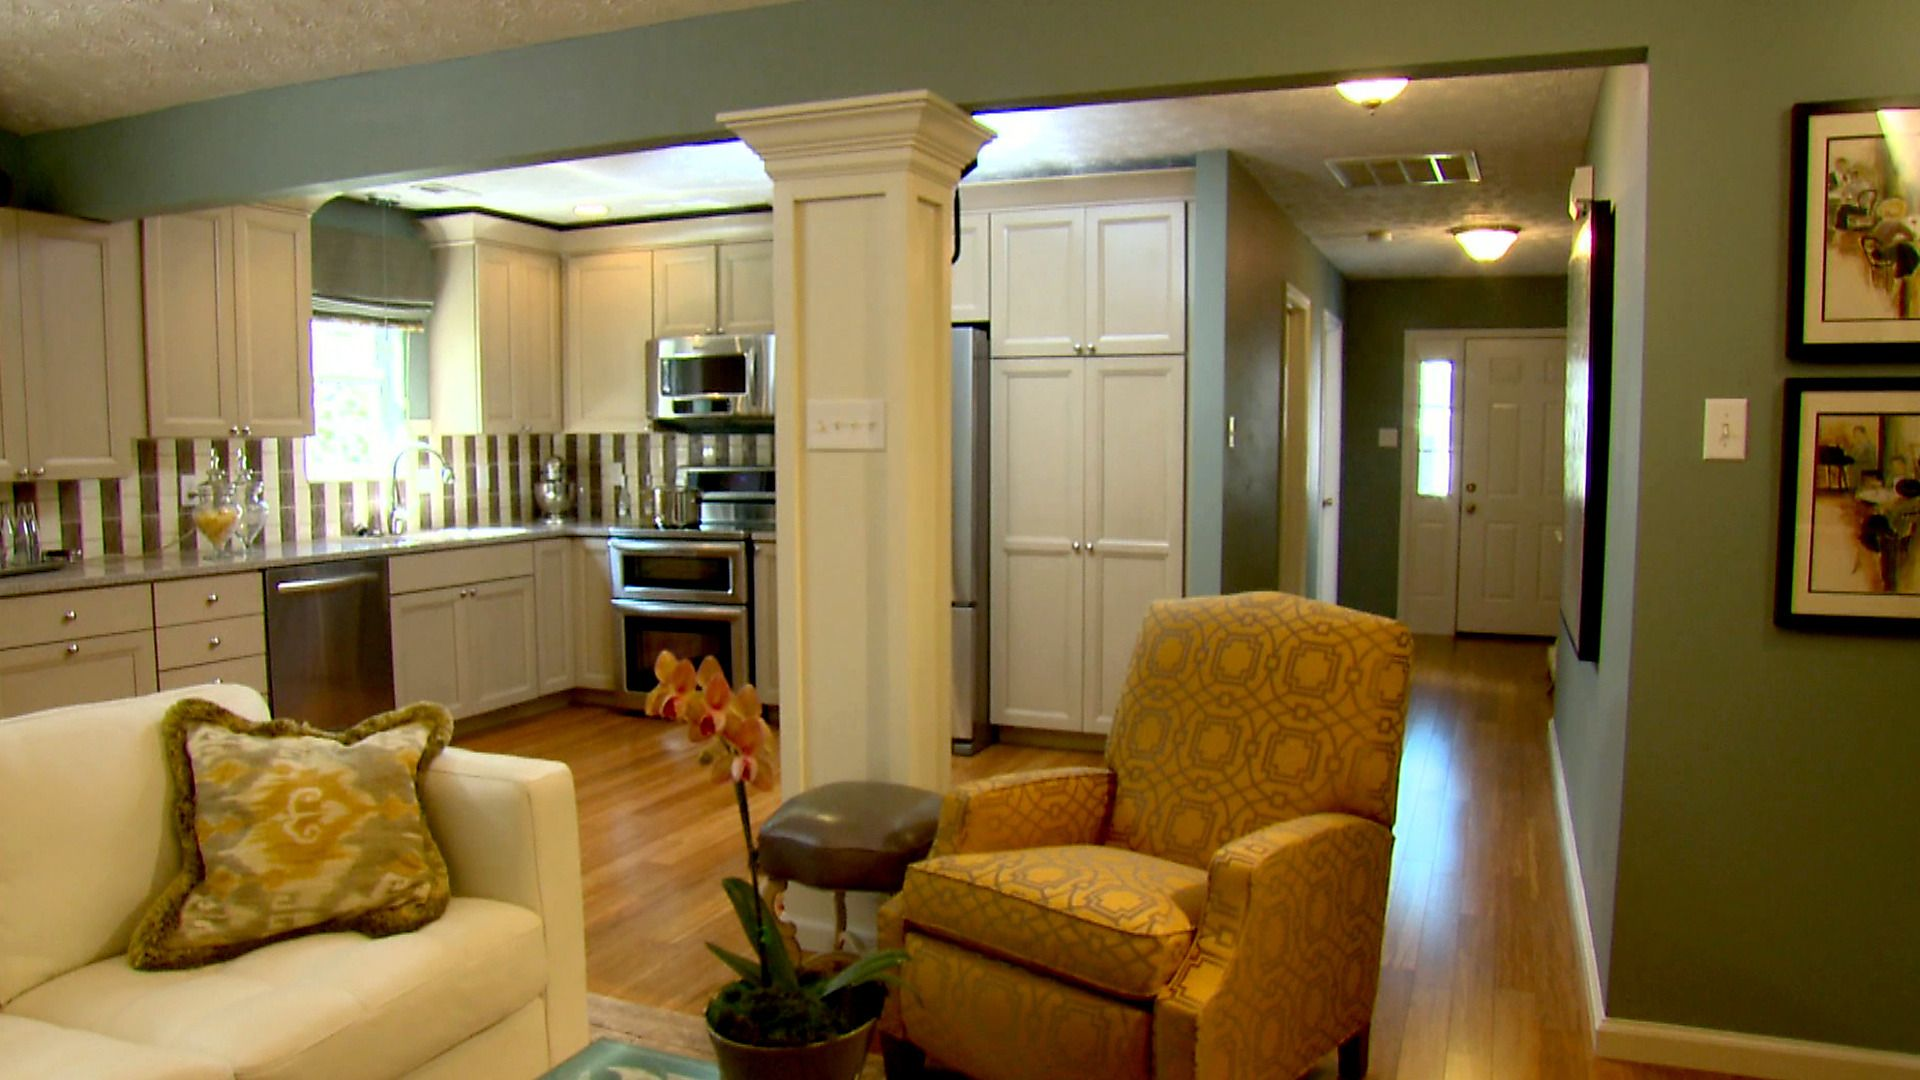 Image result for pictures of open kitchen floor plans ...